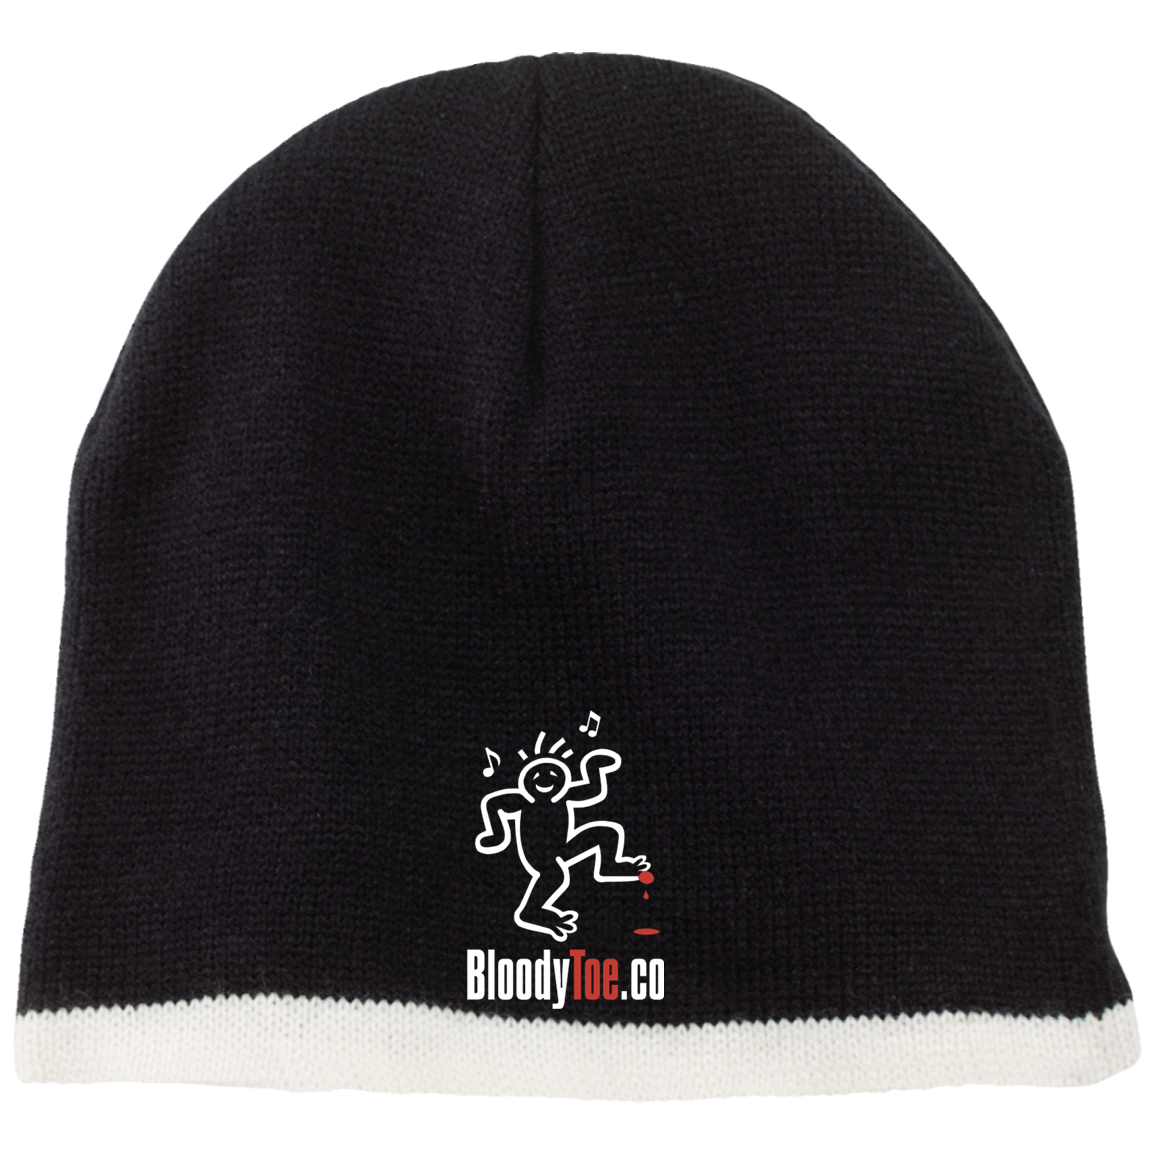 BloodyToe.co Dancing Boy Beanie